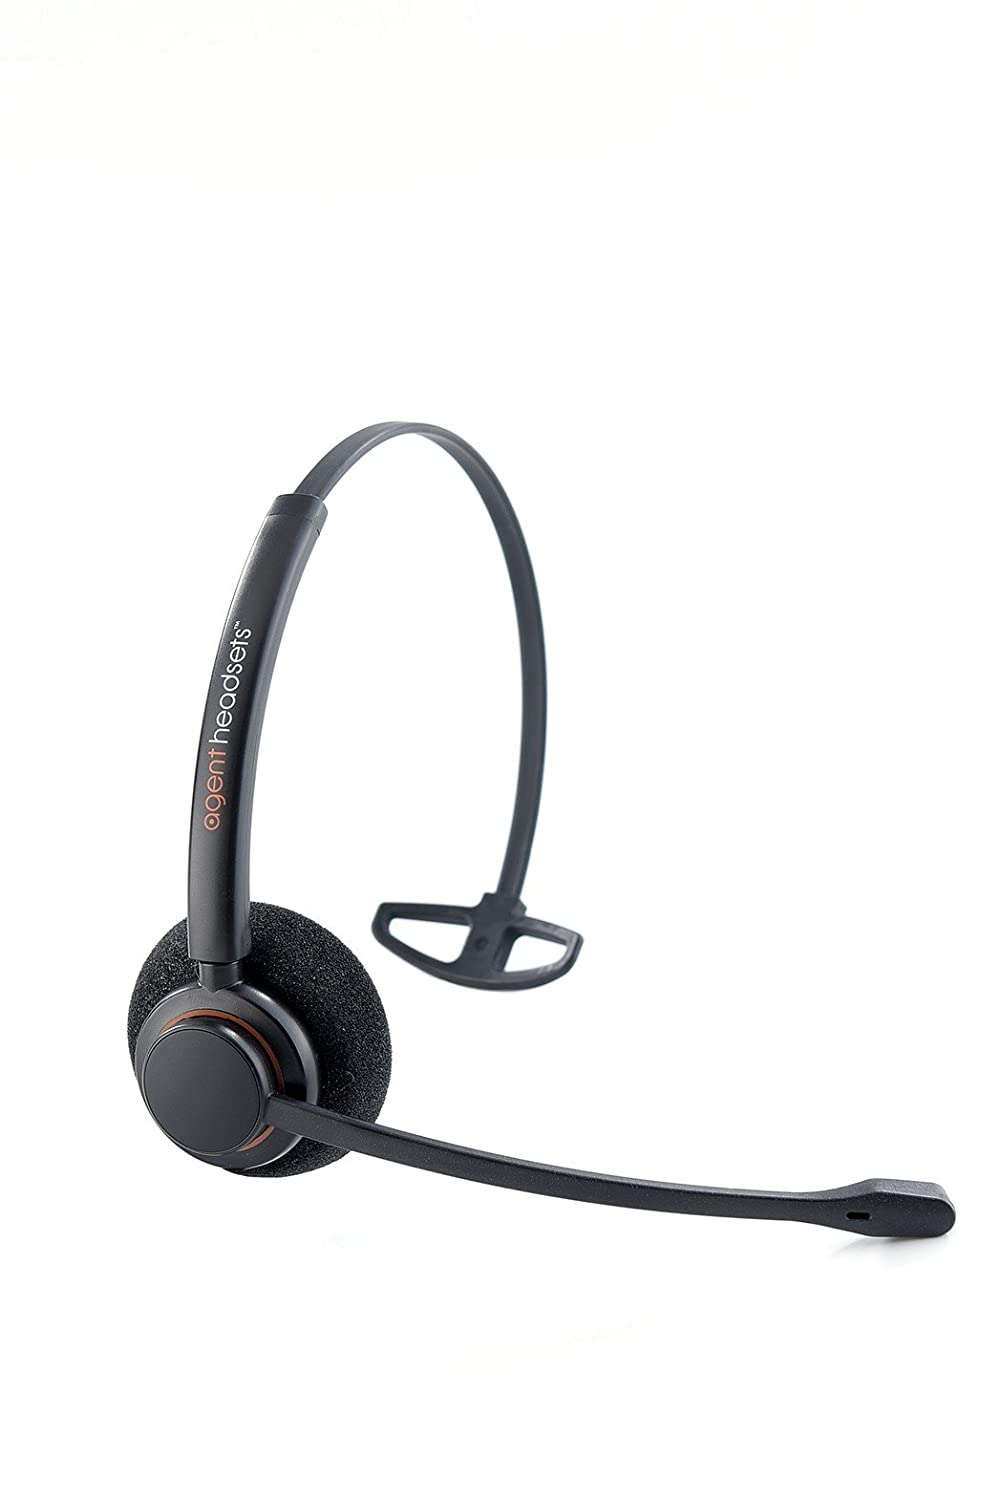 Professional Single Ear Noise Cancelling Office//Call Centre Headset With U10 Bottom Cable For Cisco IP Phones 7931G 7940 7941 7942 7945 7960 7961 7962 7965 7970